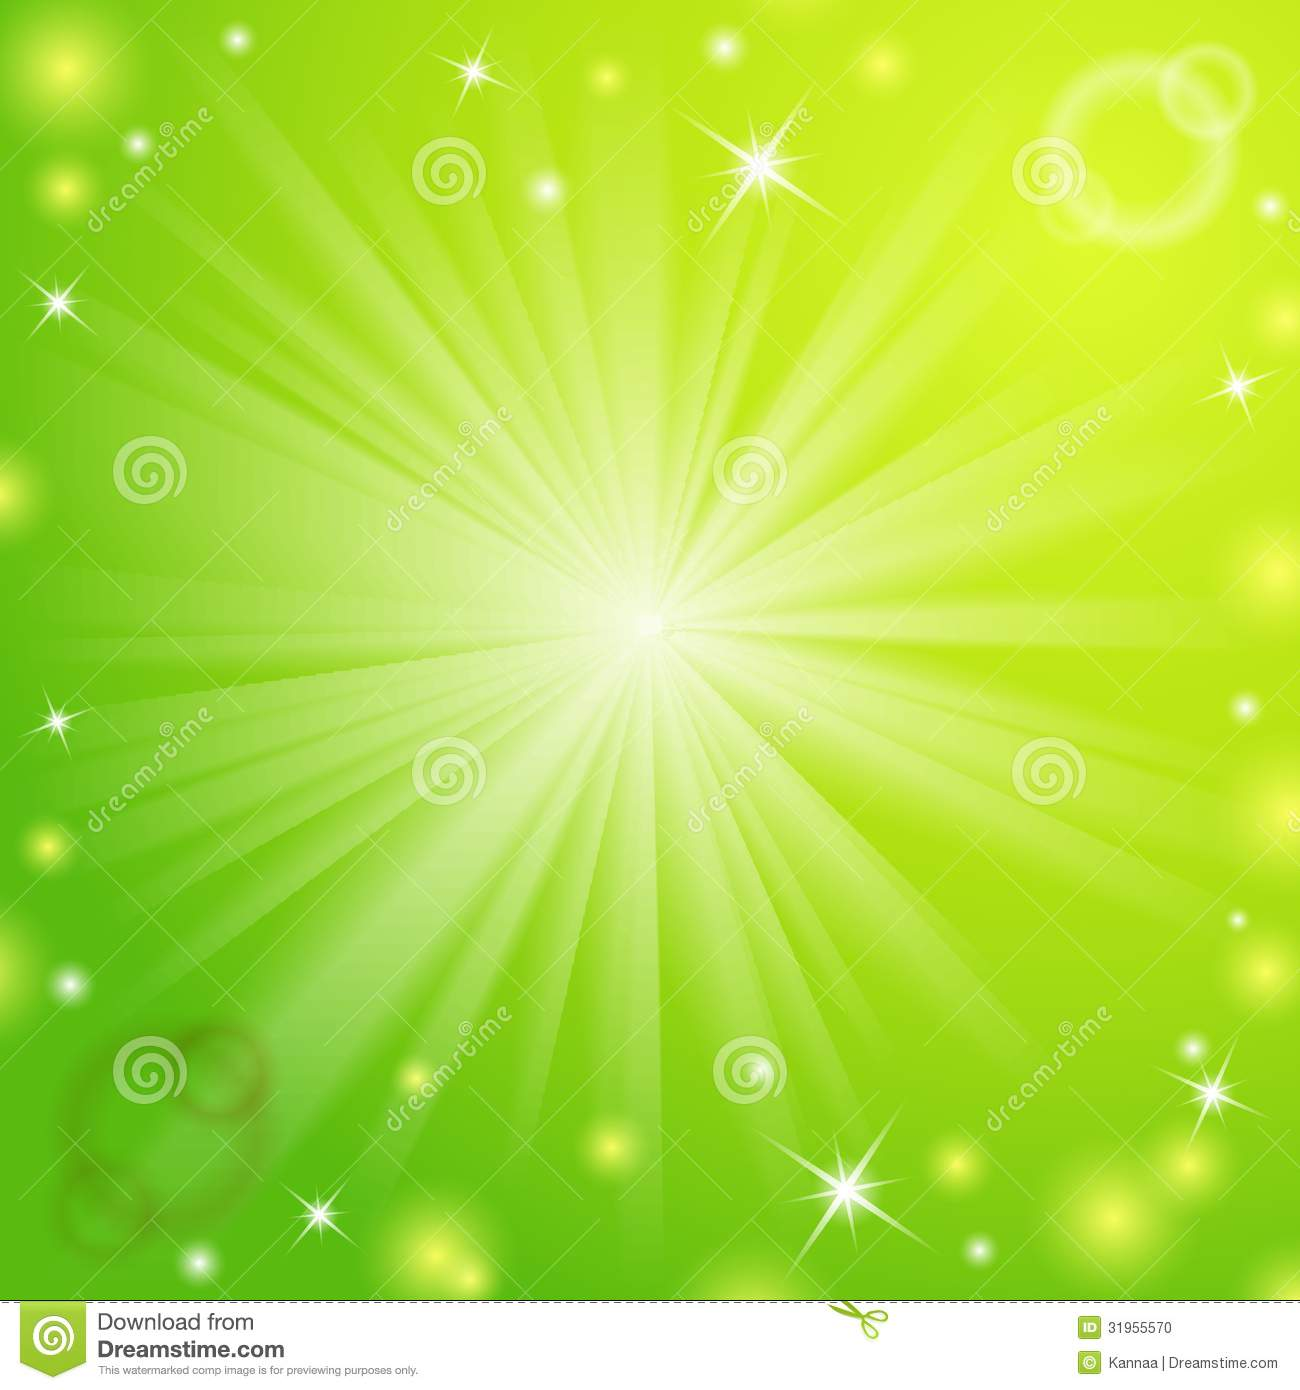 Abstract Magic Light Green Background Stock Vector Illustration